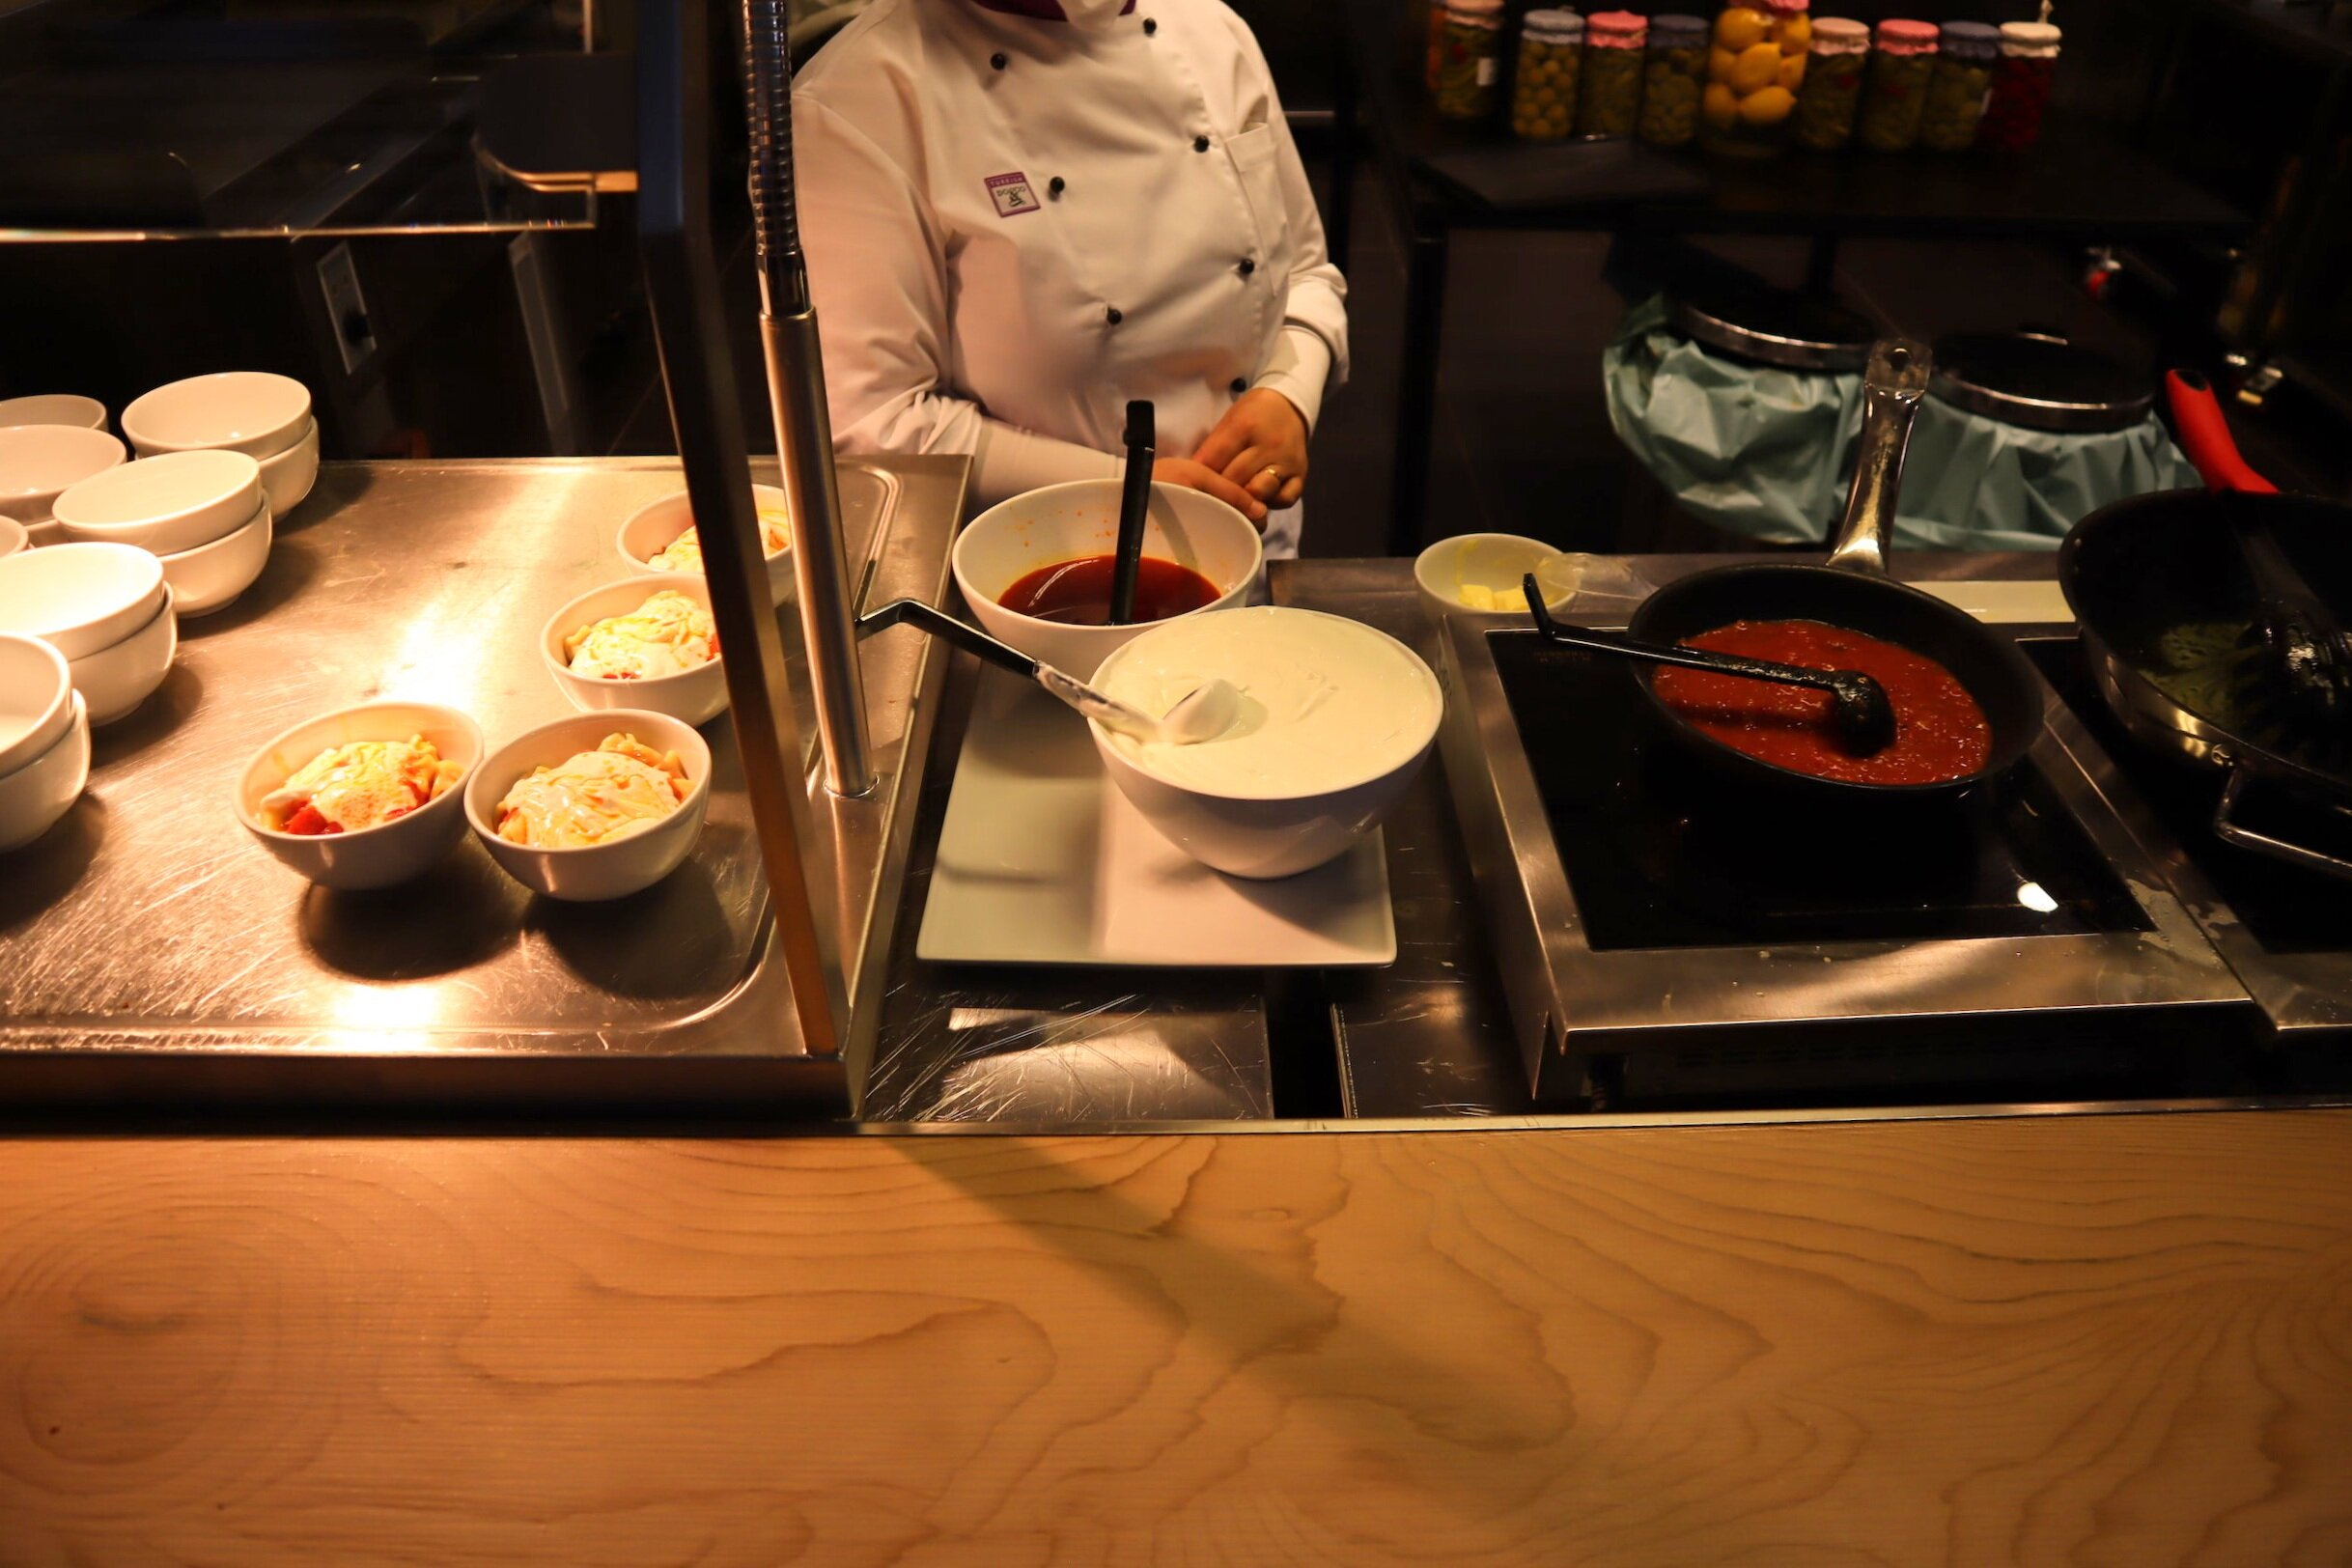 Turkish Airlines Business Lounge Istanbul – Pasta station